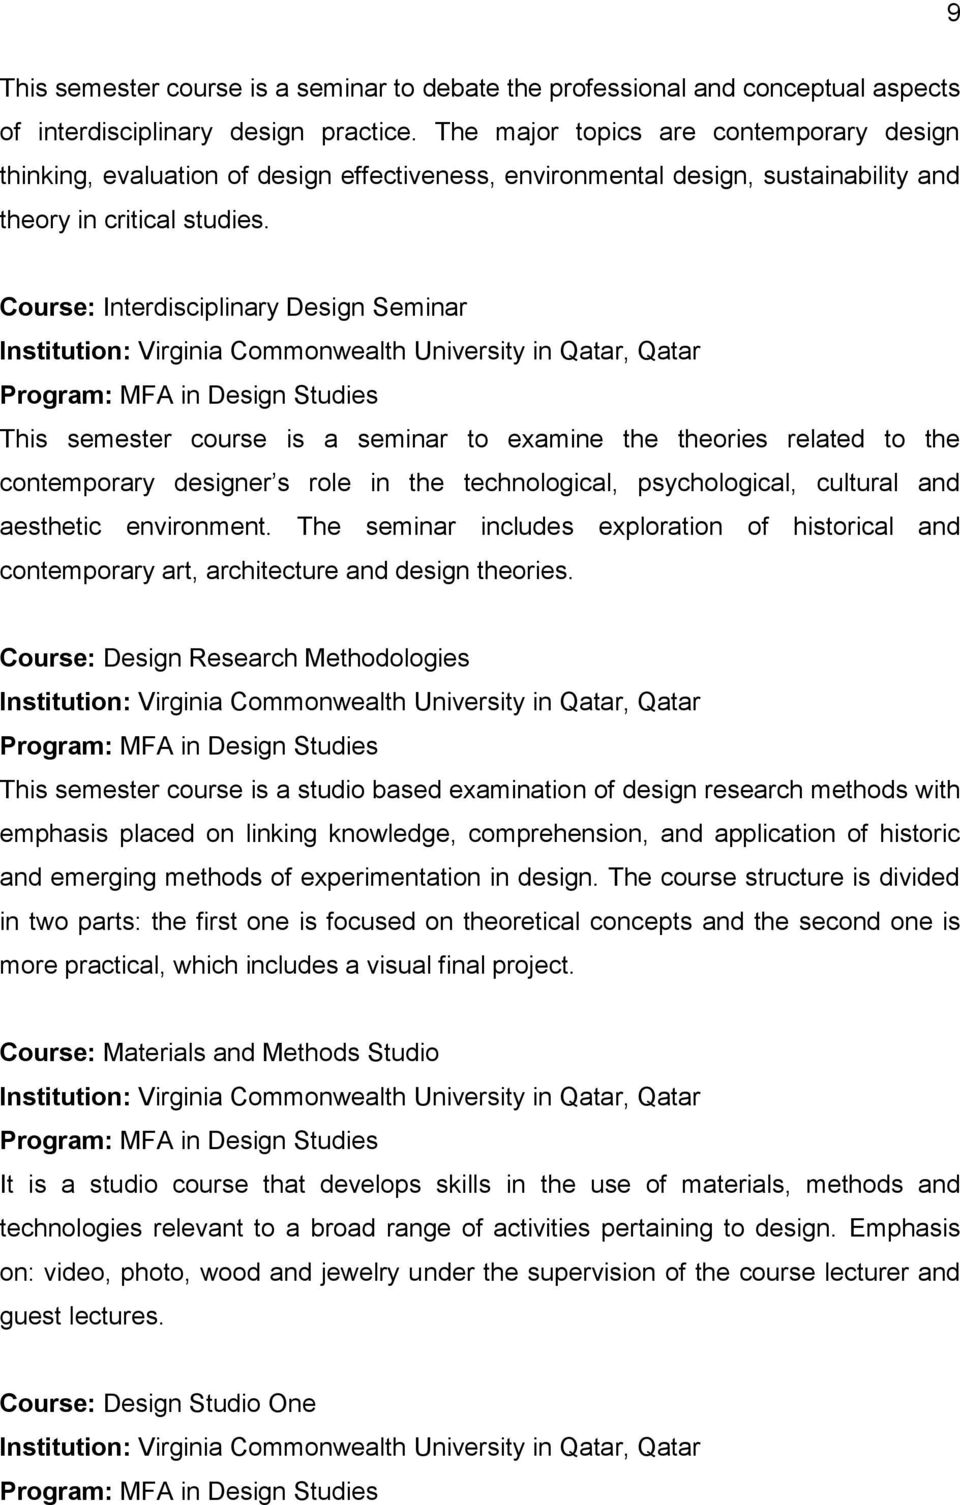 Course: Interdisciplinary Design Seminar Institution: Virginia Commonwealth University in Qatar, Qatar Program: MFA in Design Studies This semester course is a seminar to examine the theories related